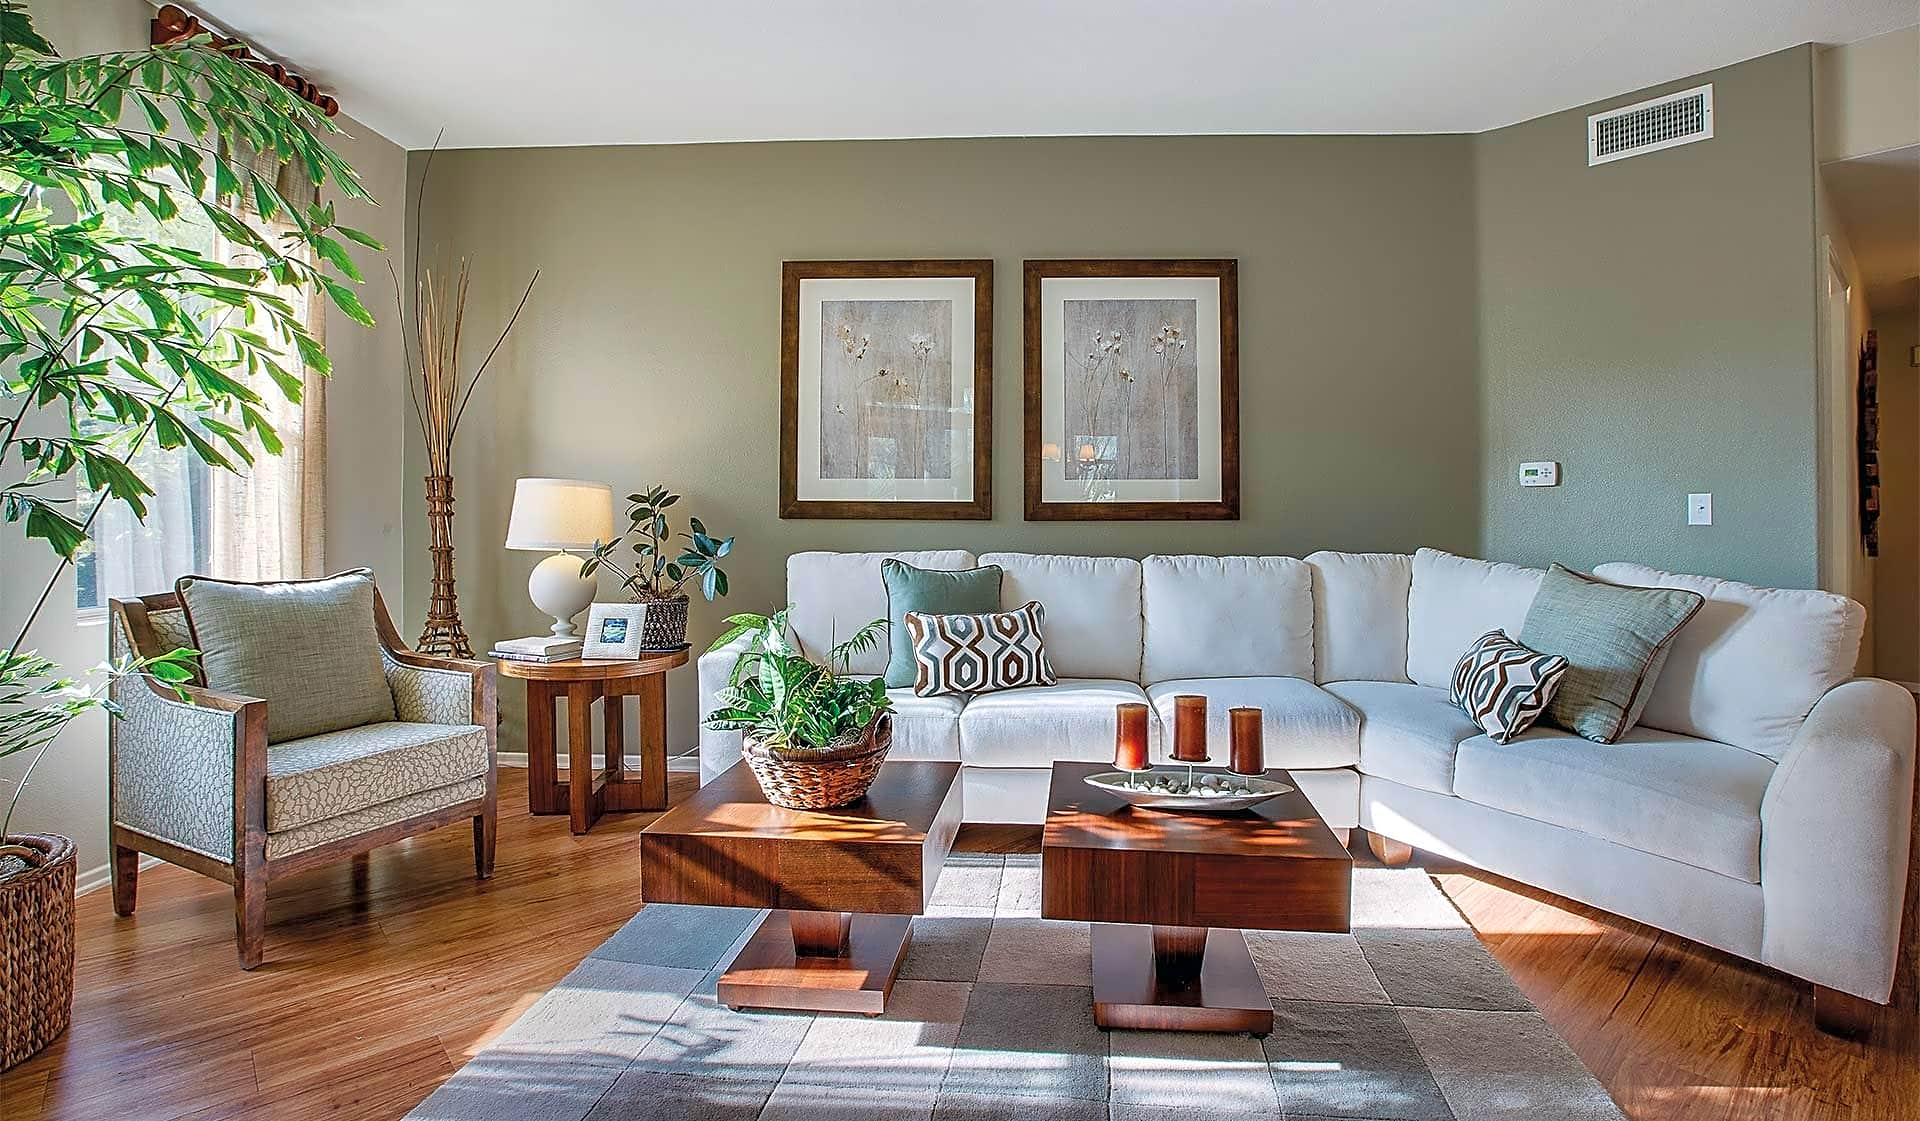 Enjoy spacious living rooms providing plenty of natural light and gas-burning fireplaces